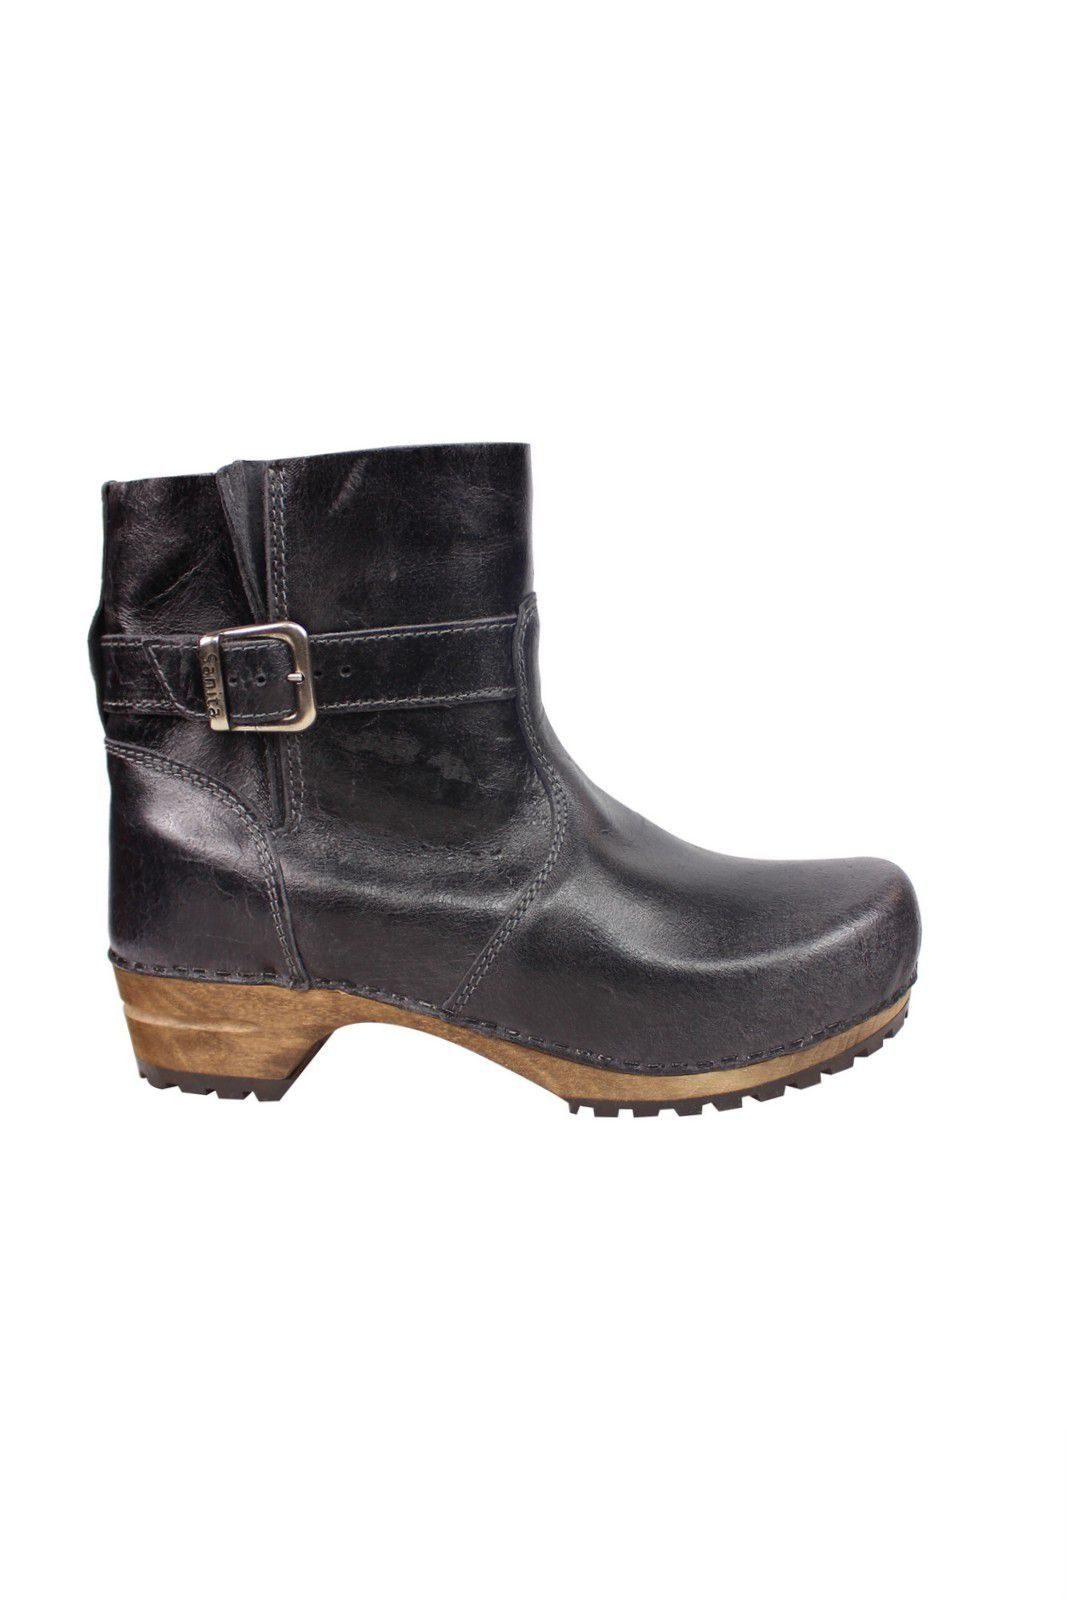 Sanita Mina Low Classic Clog Boot Black 452330 Side